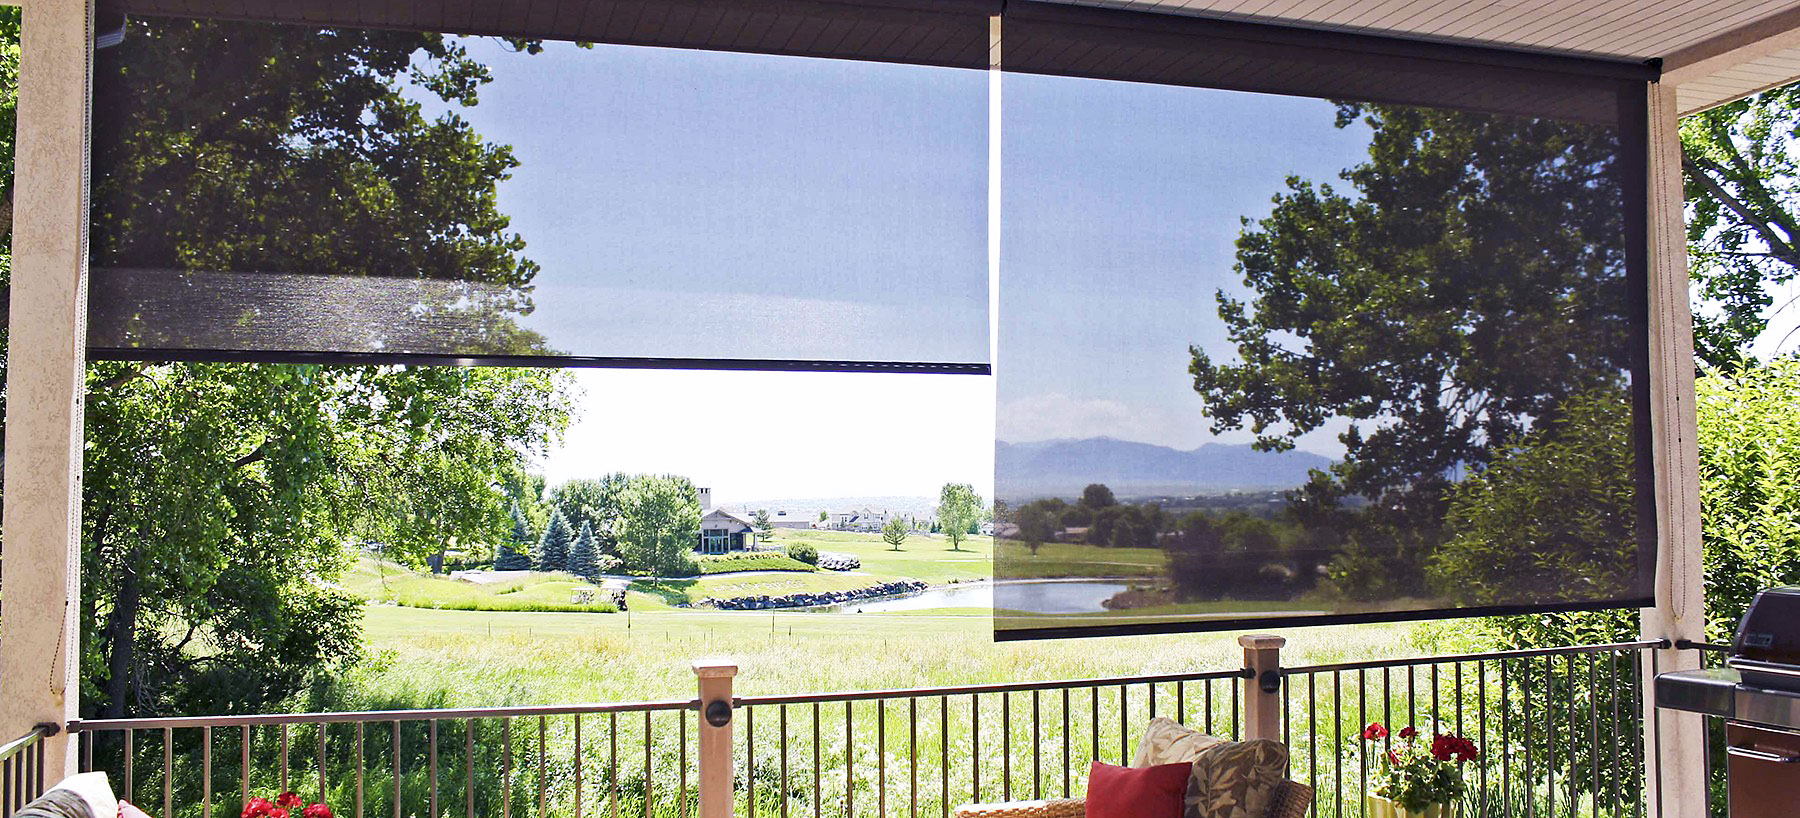 Blindster's Top Natural Light Solar Shades